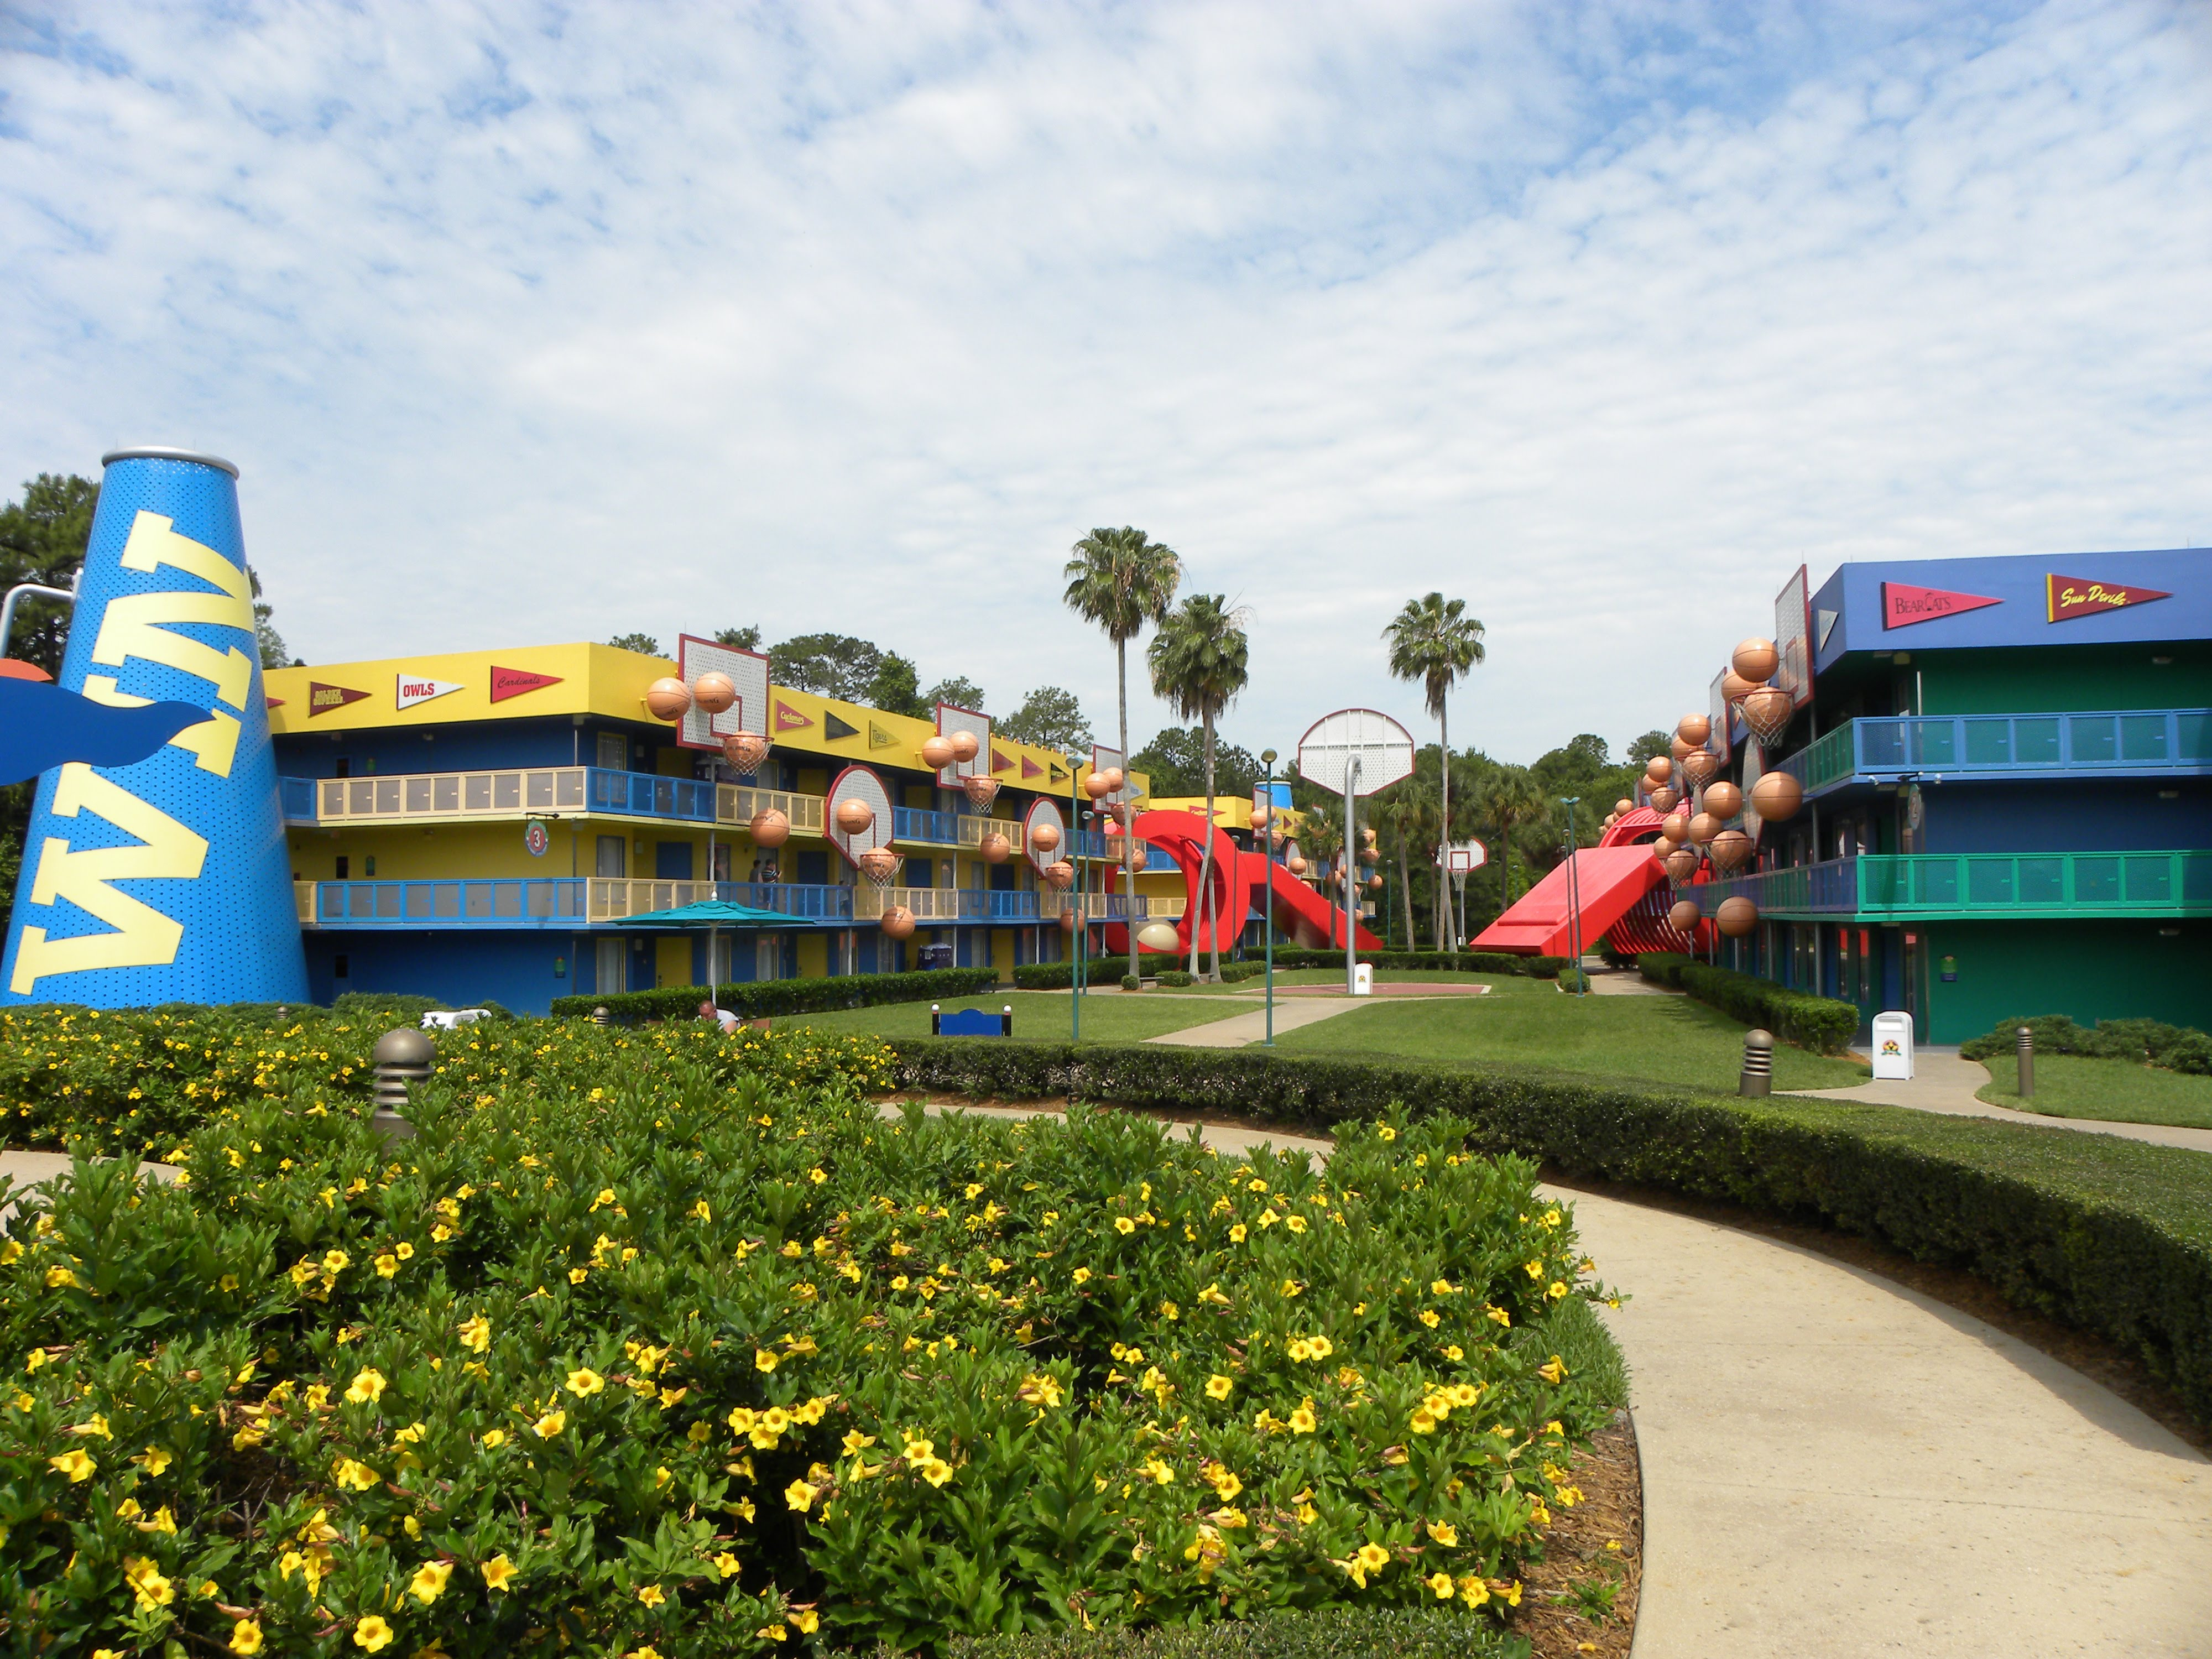 Staying at a Disney Resort or outside the park